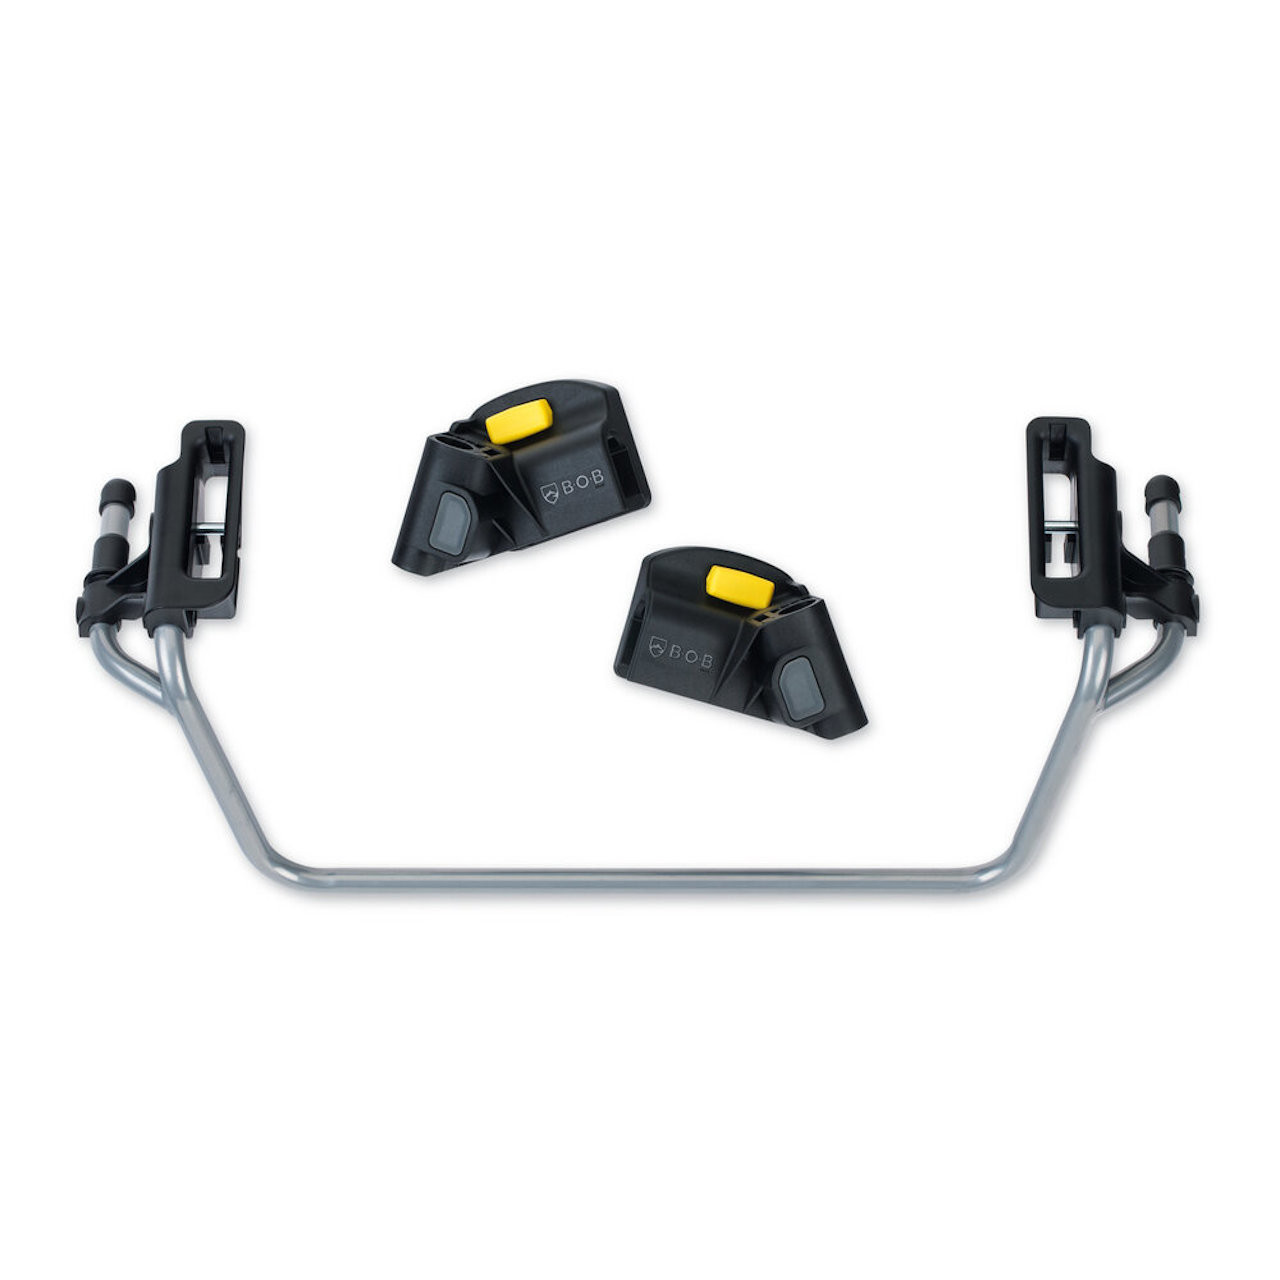 New 2020 Britax Single Infant Car Seat Adapter